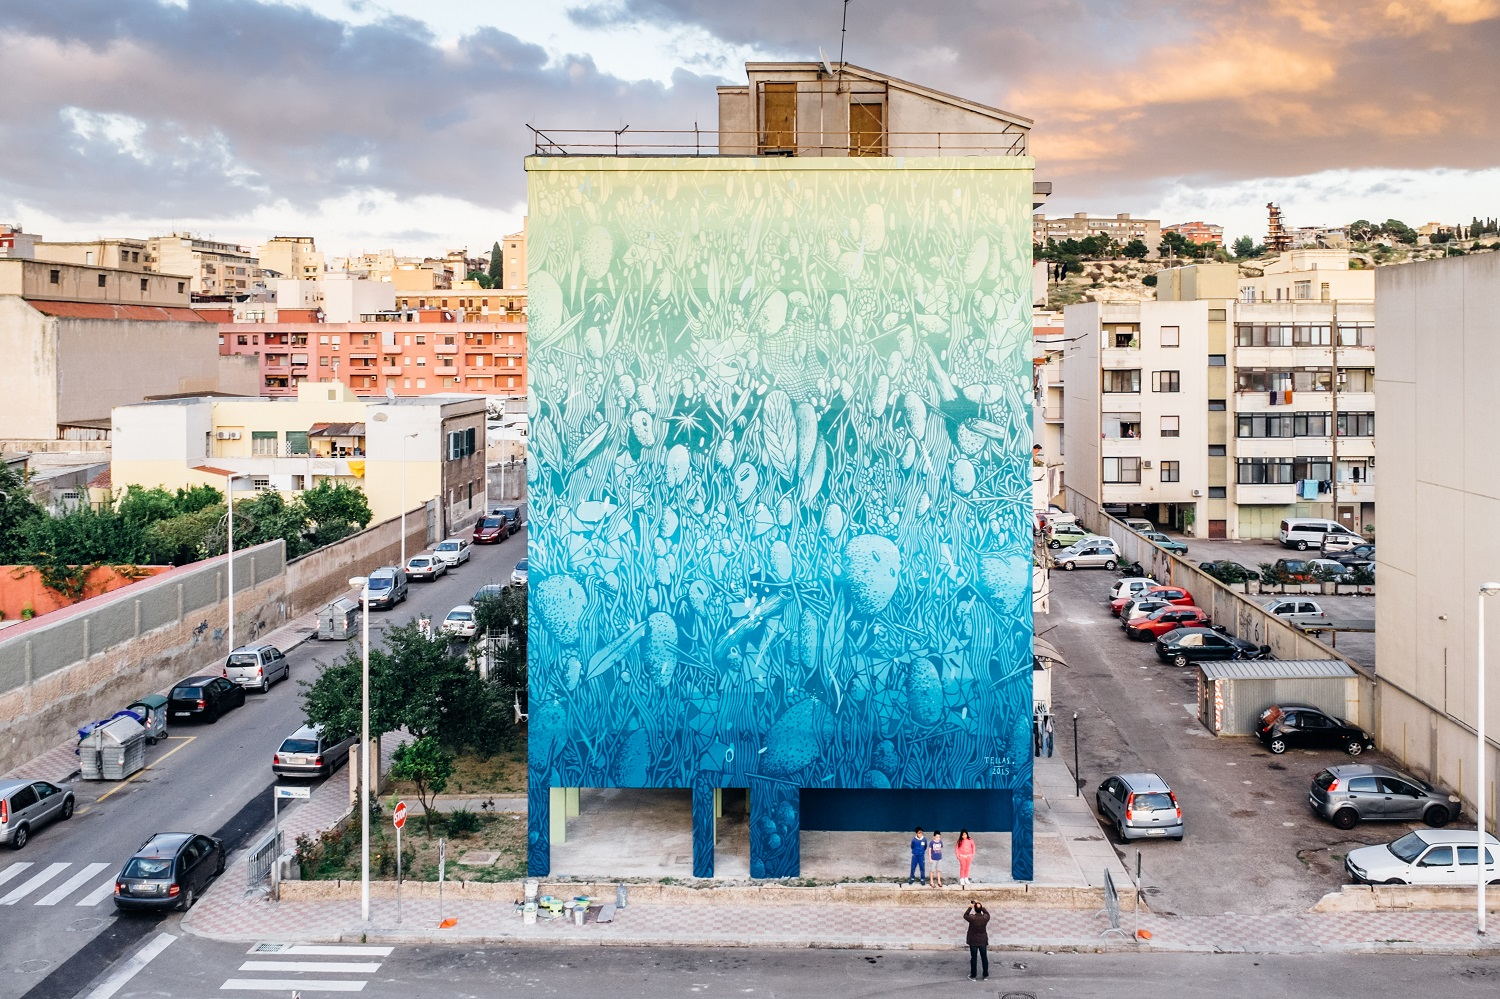 tellas- for cagliari Capitale della cultura 2015 - Cagliari  IT- photo by Antonio Pintus